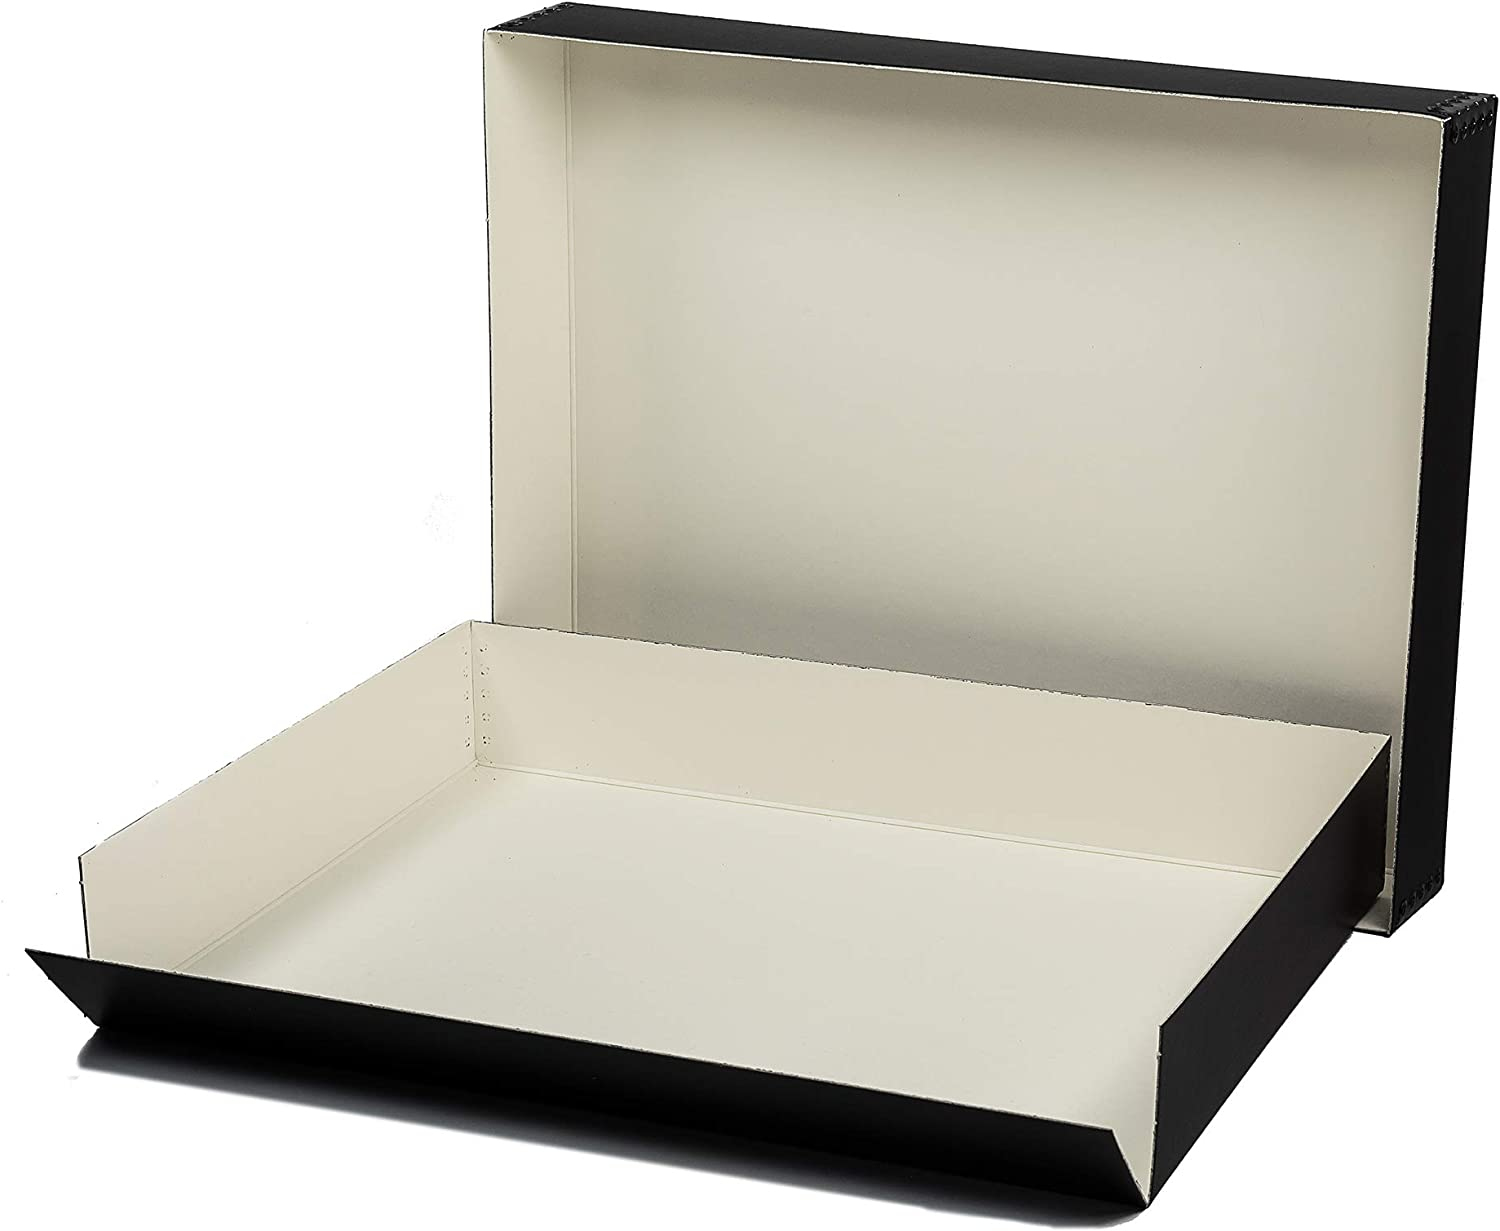 Lineco Blue//Gray 8.5x11 Museum Storage Box with Removable Lid and Drop Front 8.5 x 11 x 3 Protects Longevity Store Photos Prints Cards Magazines DIY. Archival Documents